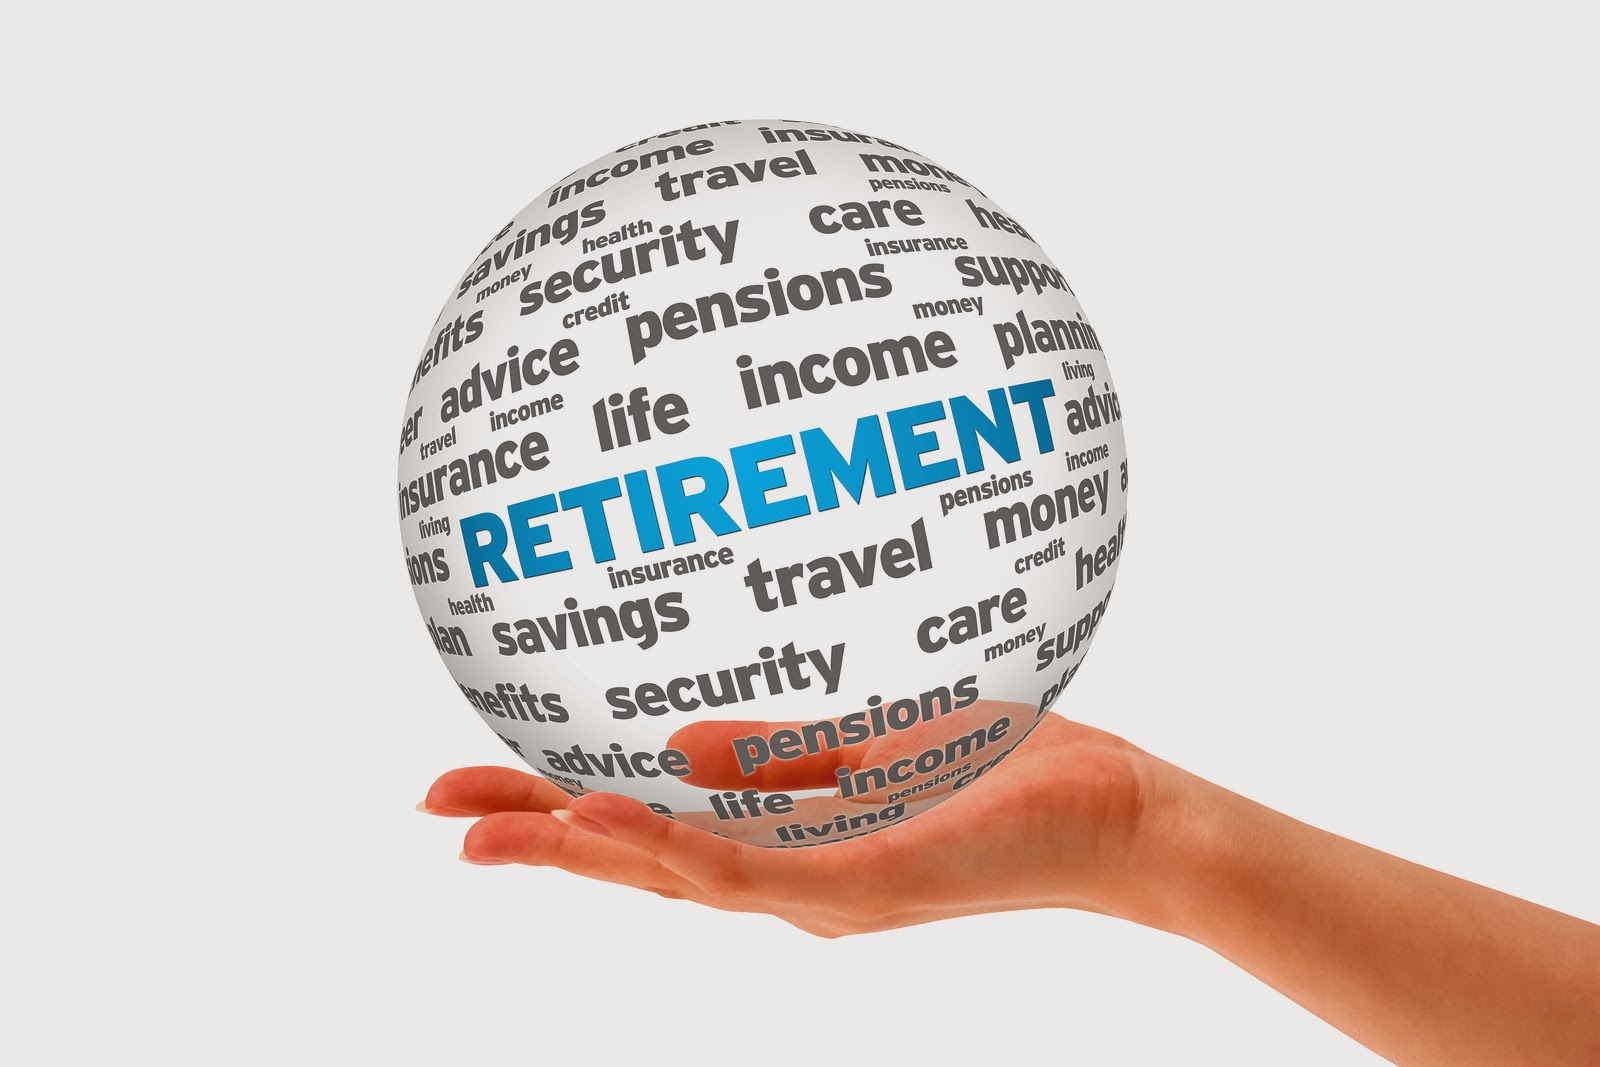 Some Effective Tips for Retirement Planning